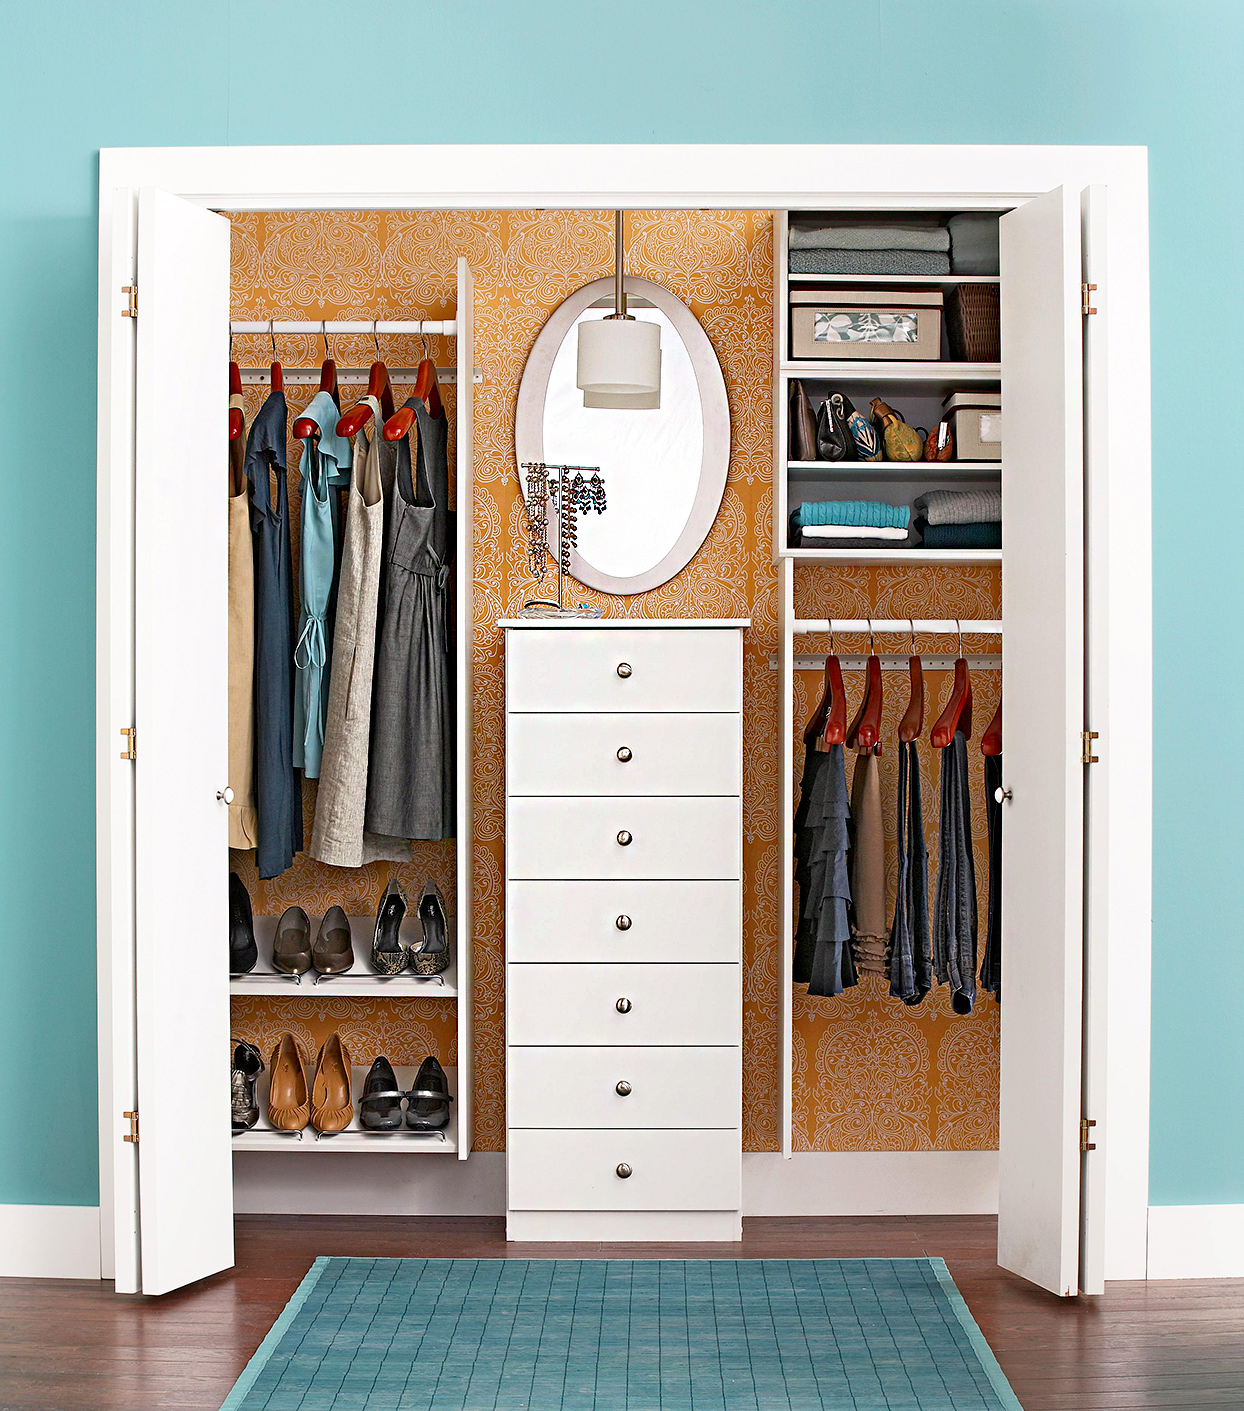 A single sided walk in closet with a dresser inside